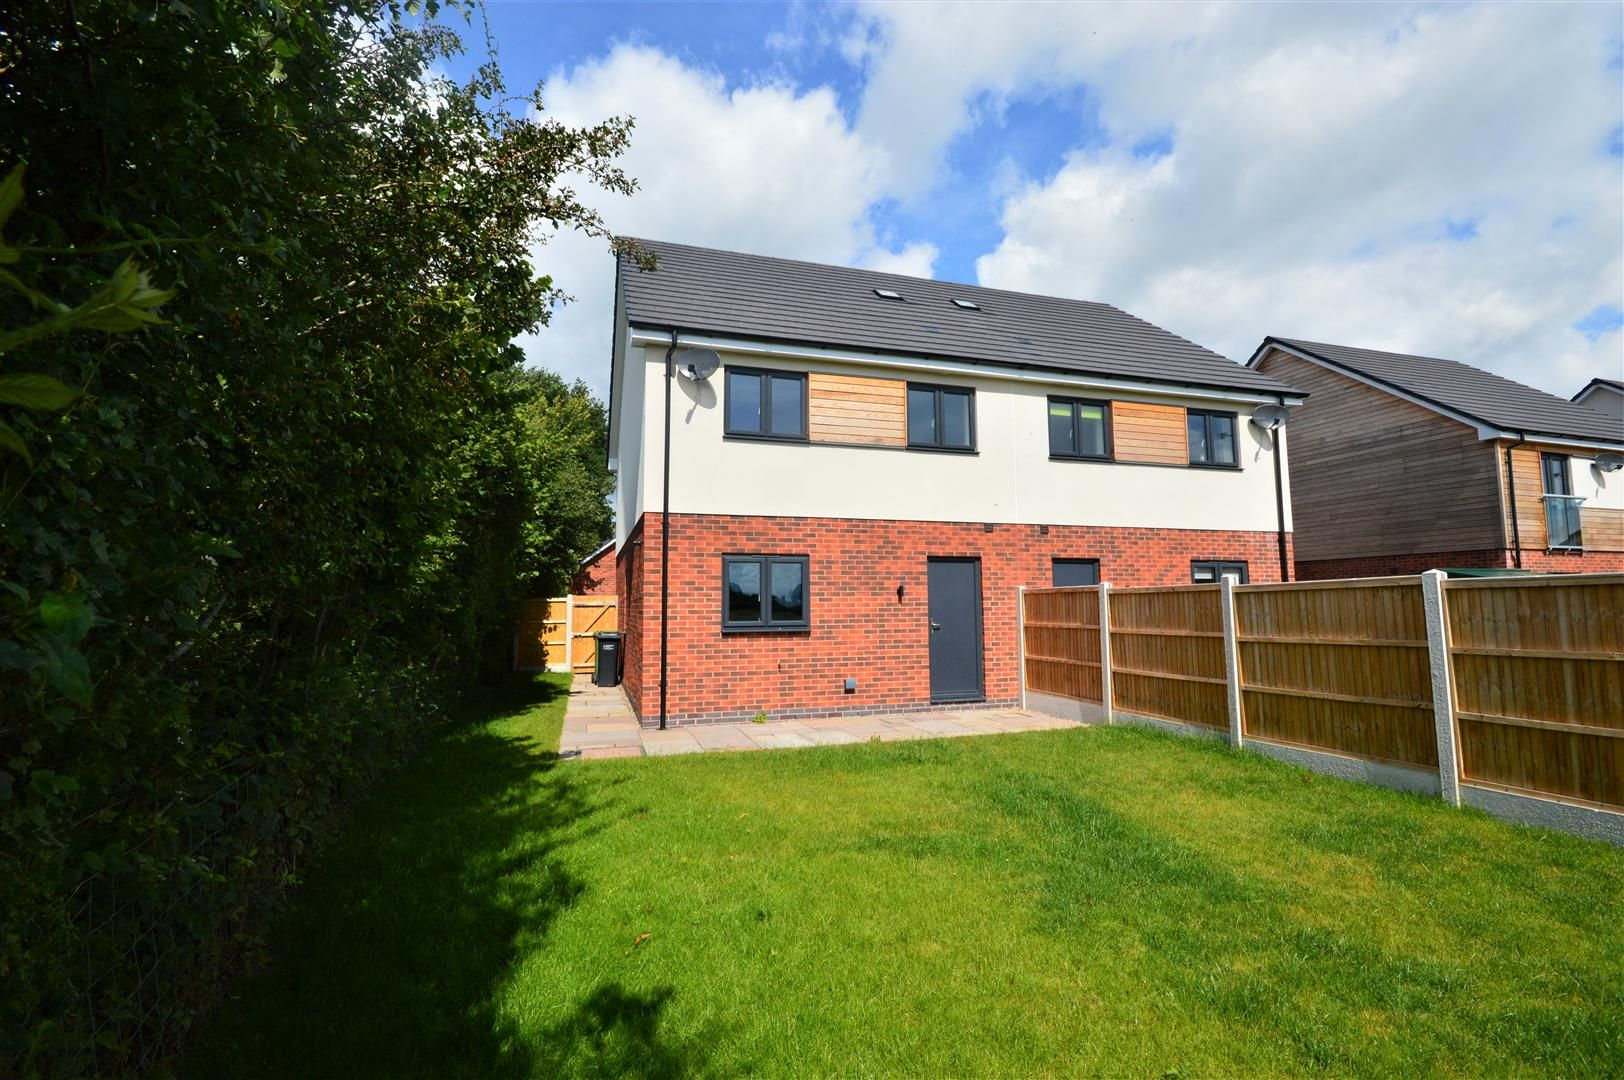 3 bed semi-detached for sale in Kingsland  - Property Image 8